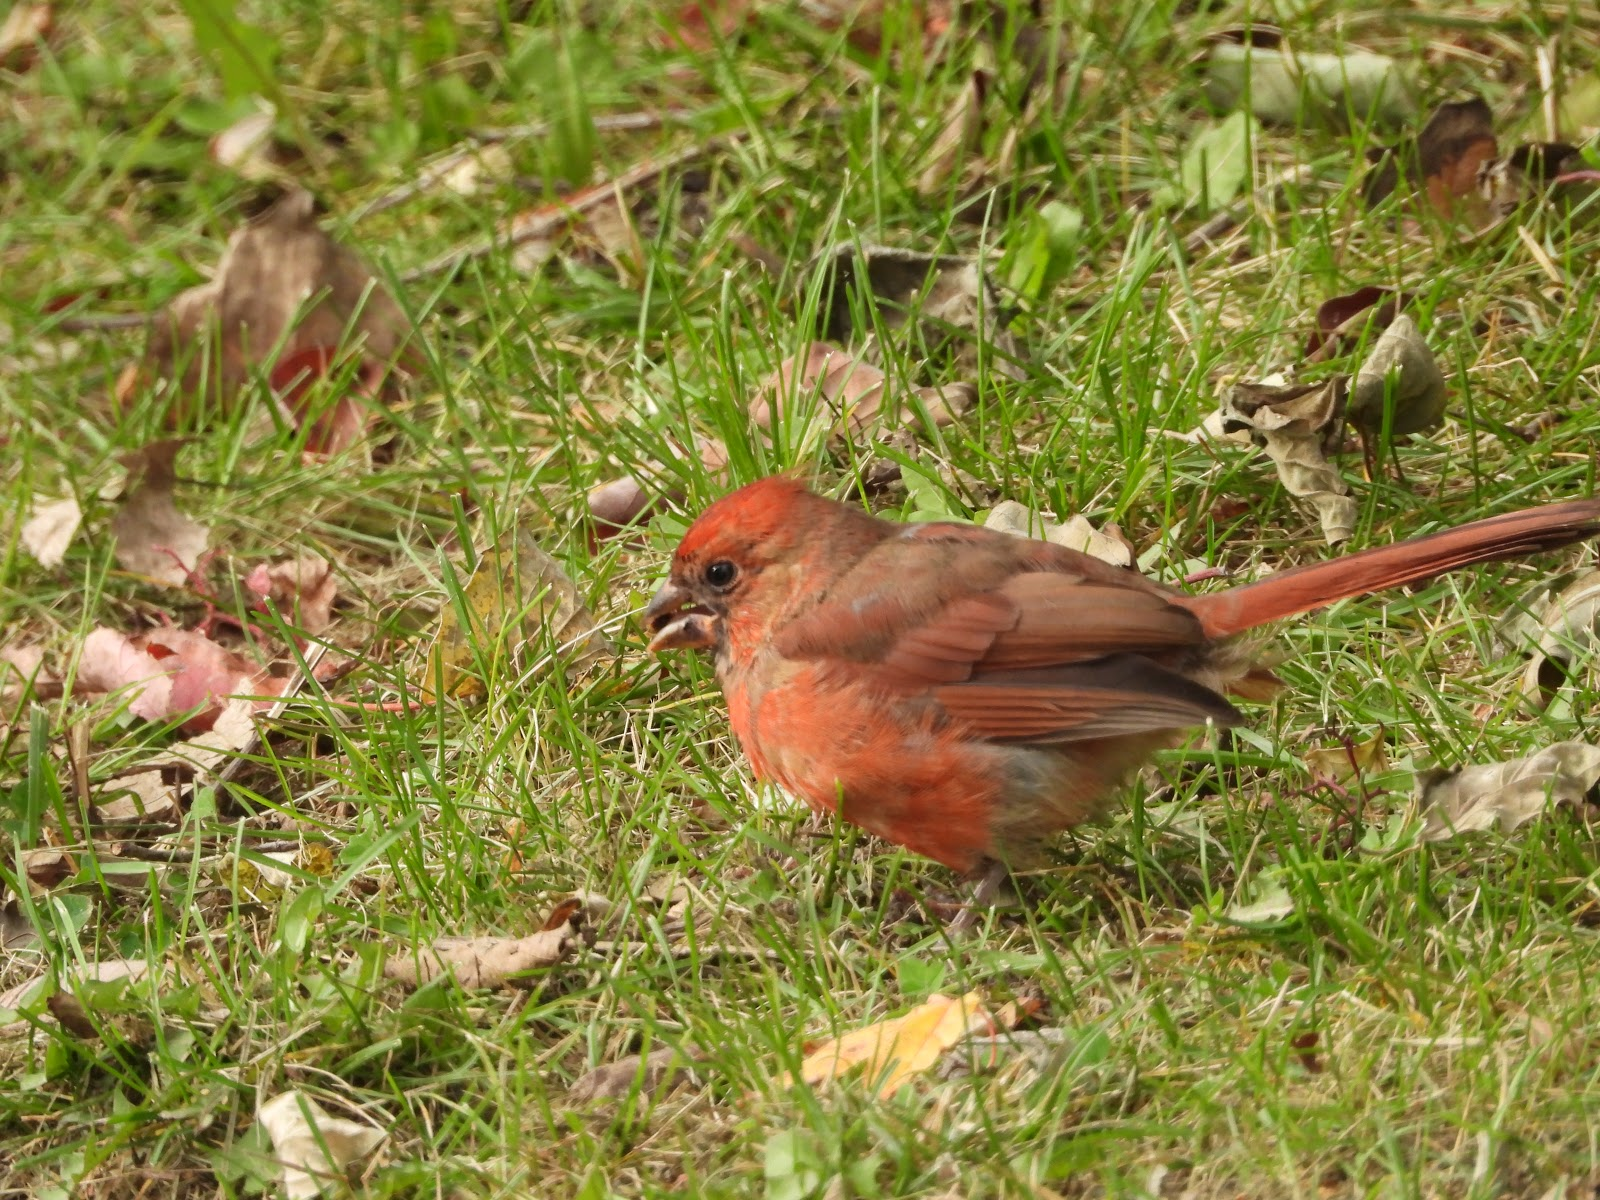 JUVENILE NORTHERN CARDINAL MOLTING TO ADULT, COLONEL